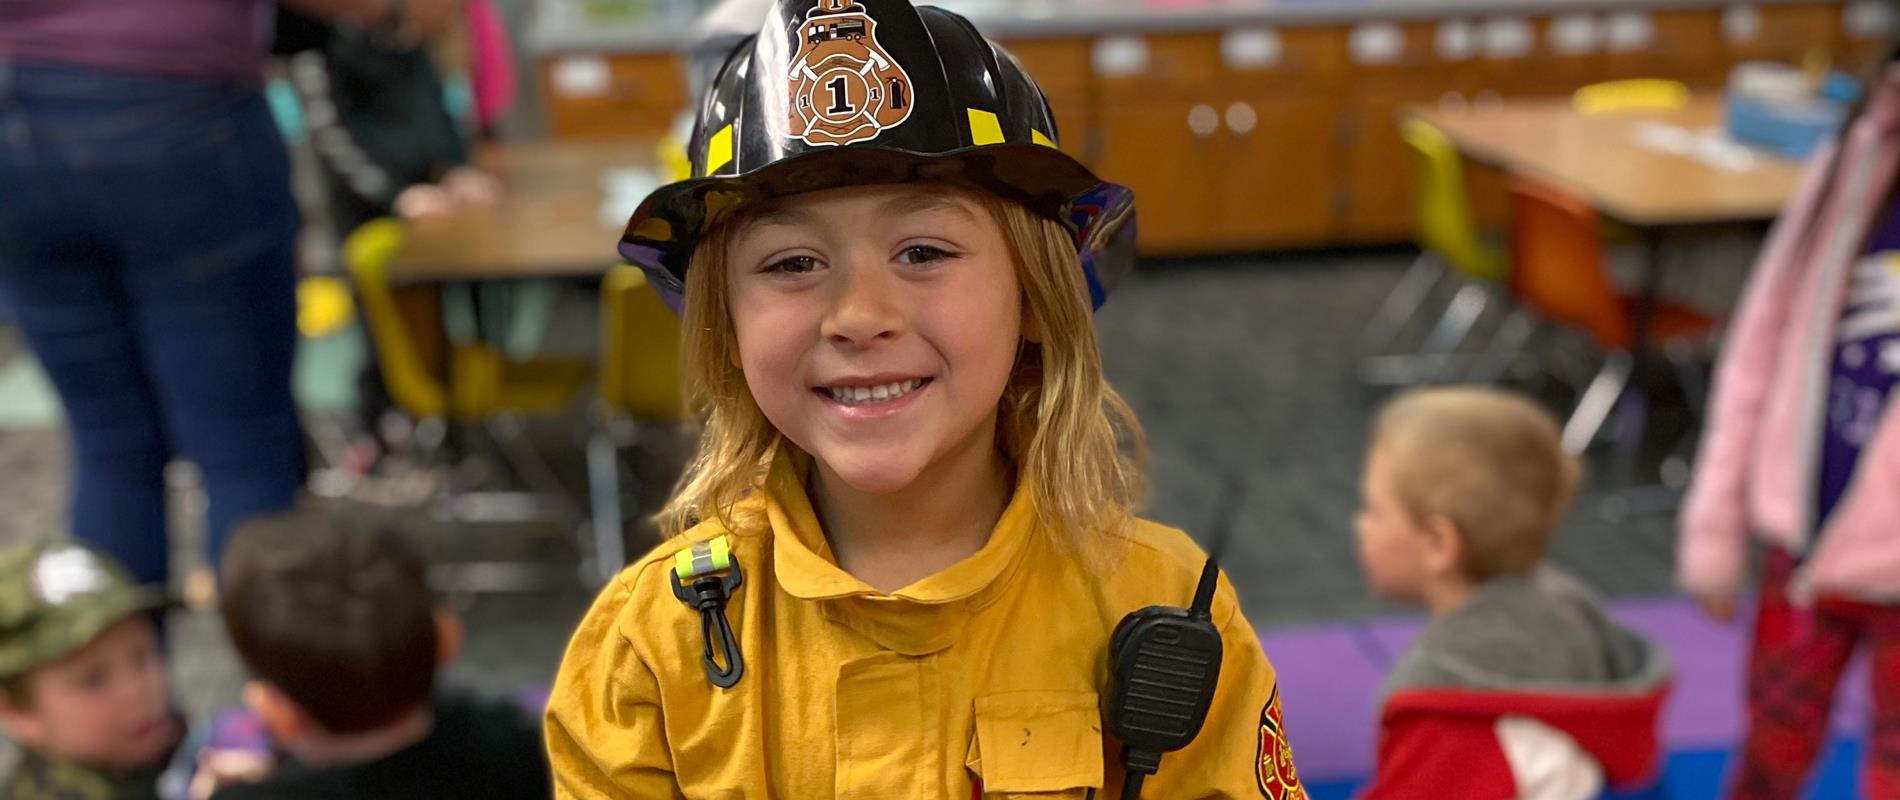 picture of girl in a firefighter costume